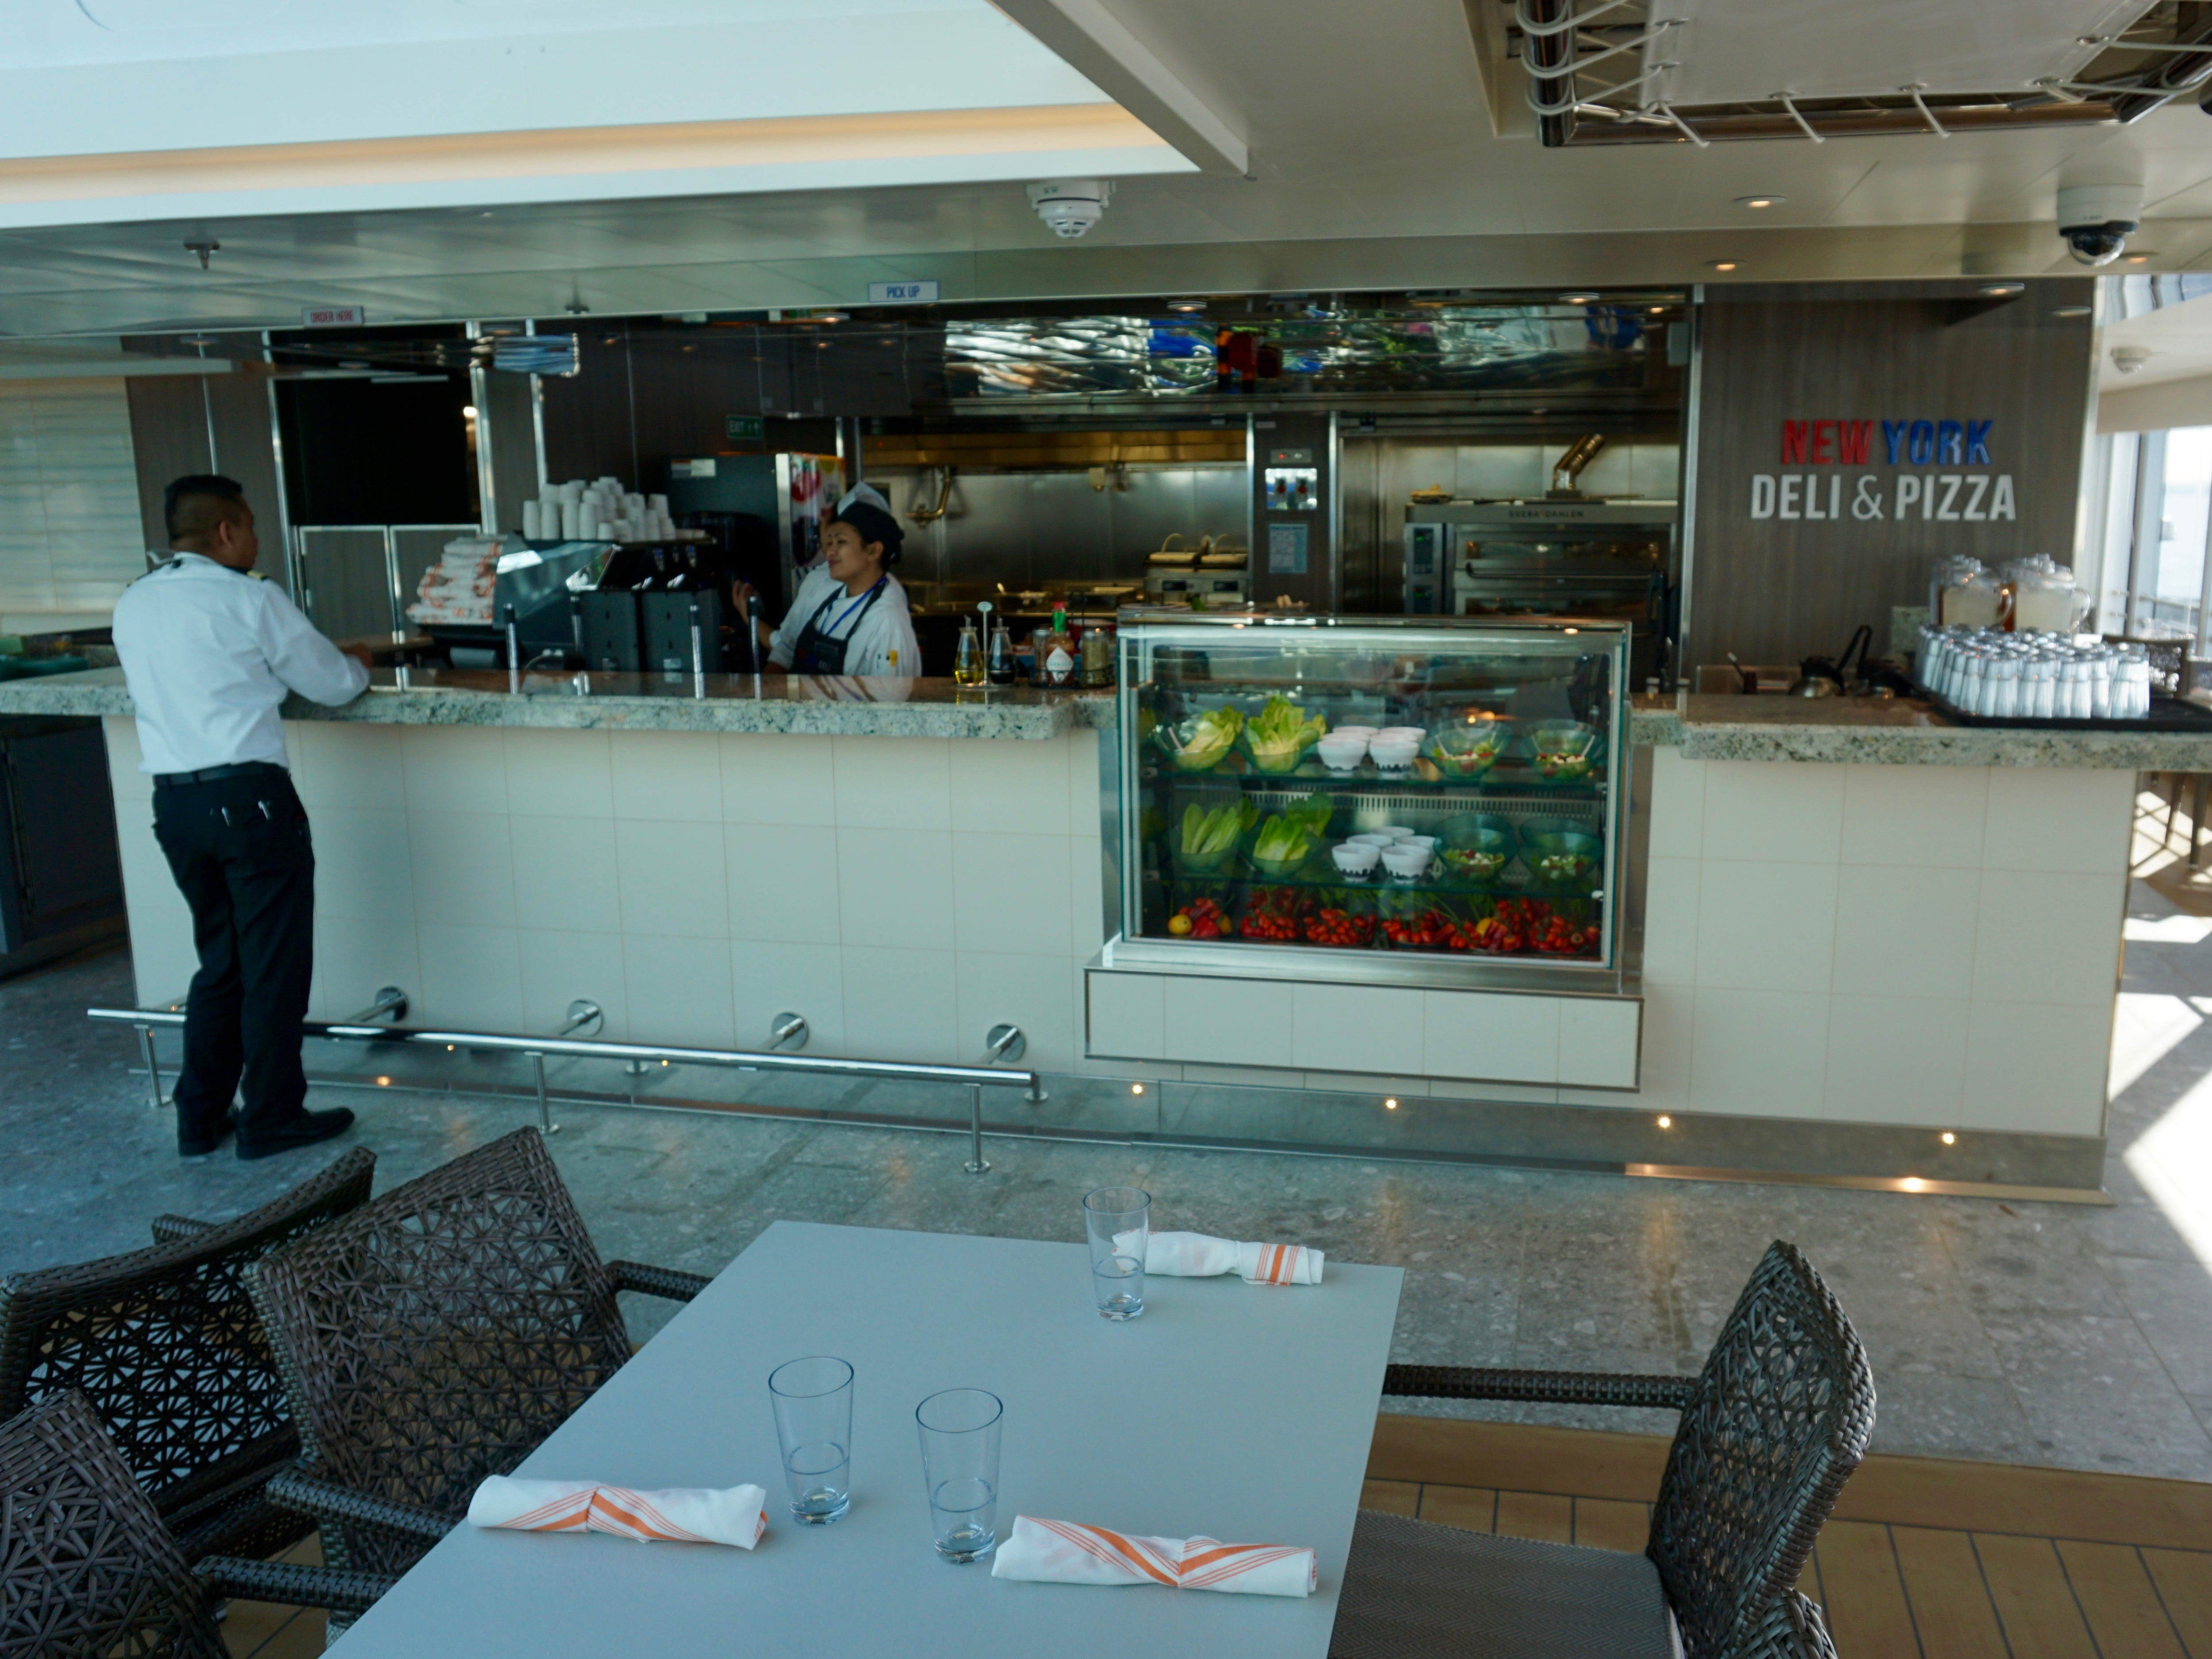 New York Deli and Pizza offers quick breakfast, lunch and dinner options on Deck 11, just aft of the Lido Pool.